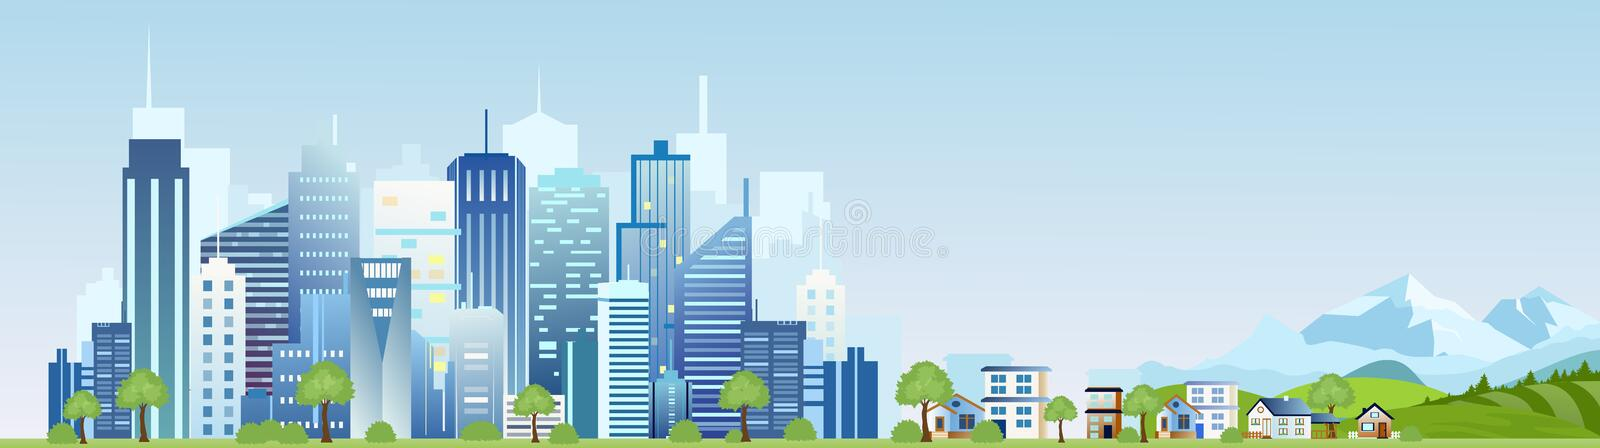 Vector illustration of urban industrial city landscape. Big modern city with skyscrapers with mountains and country vector illustration